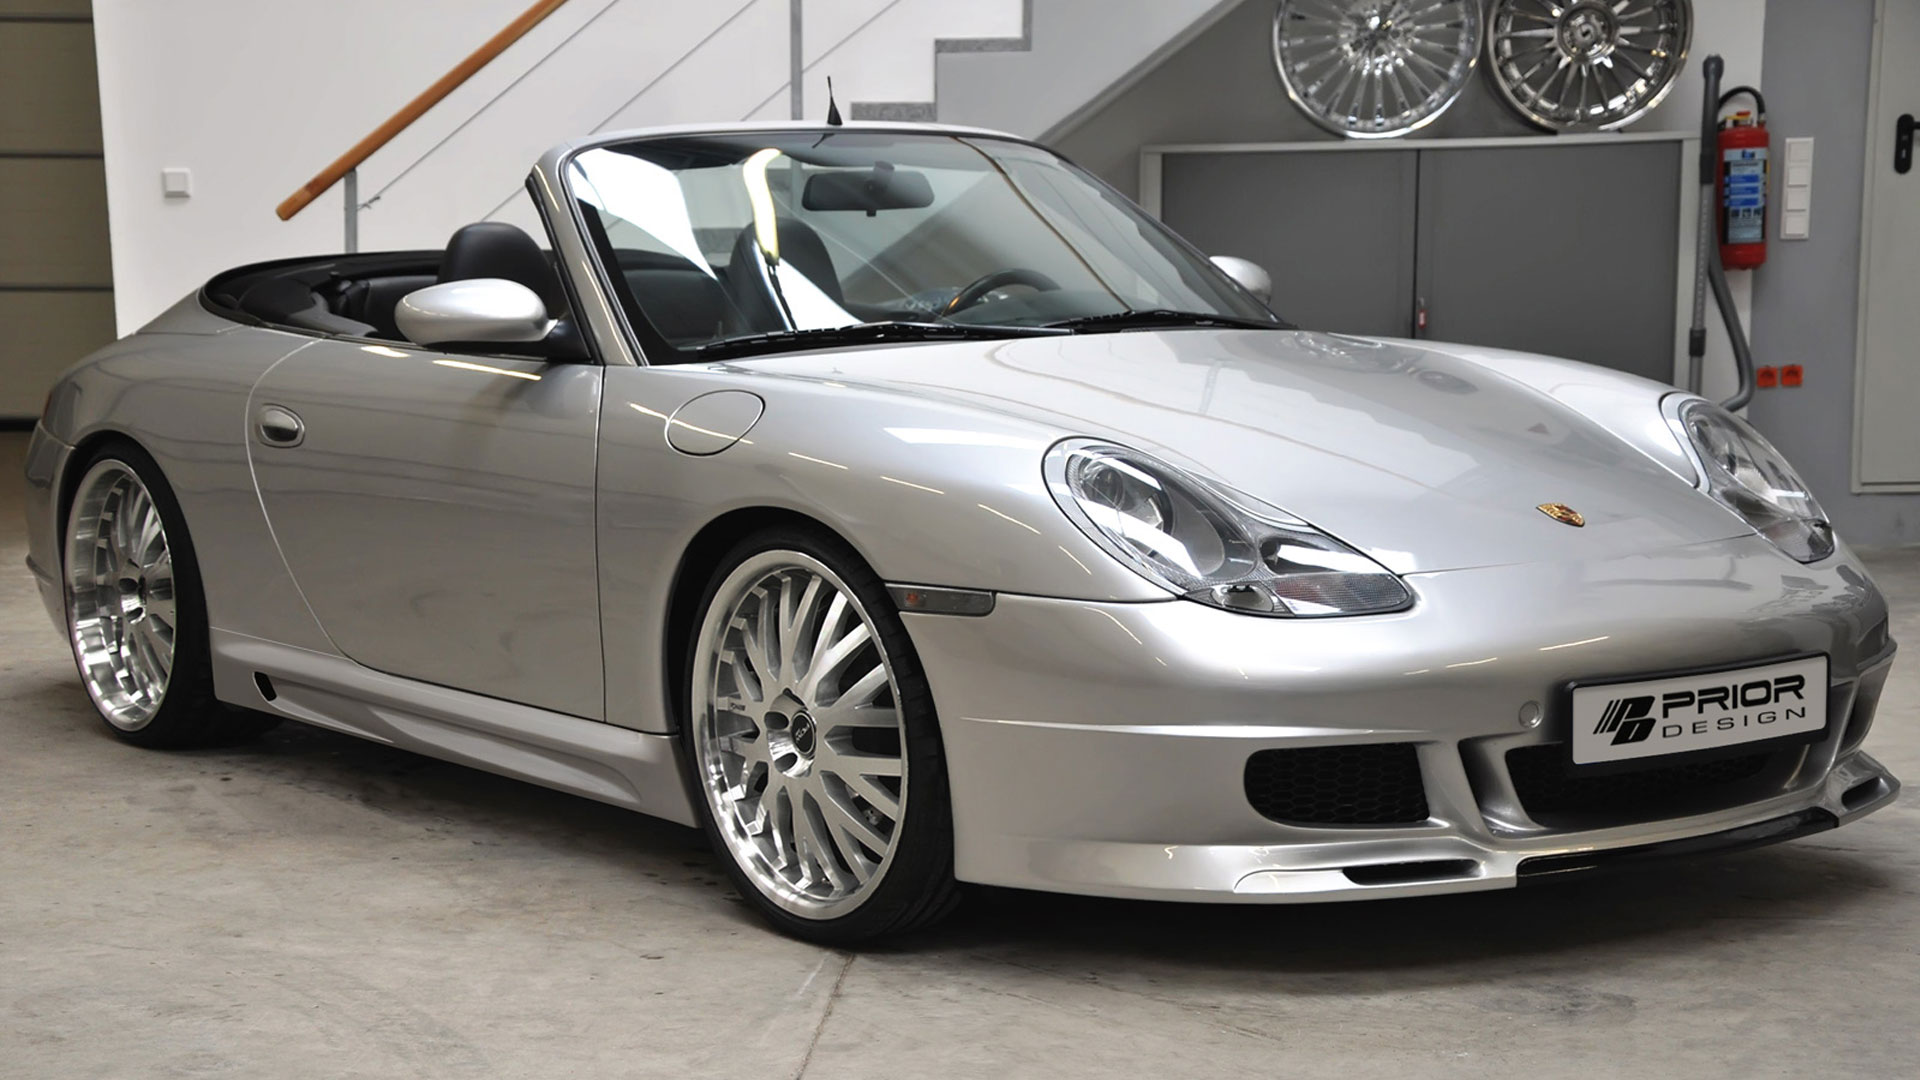 Porsche 911 996 Tuning Freestyle Aerodynamic Package For All Porsche 911 996 1 Models Except Turbo M D Exclusive Cardesign